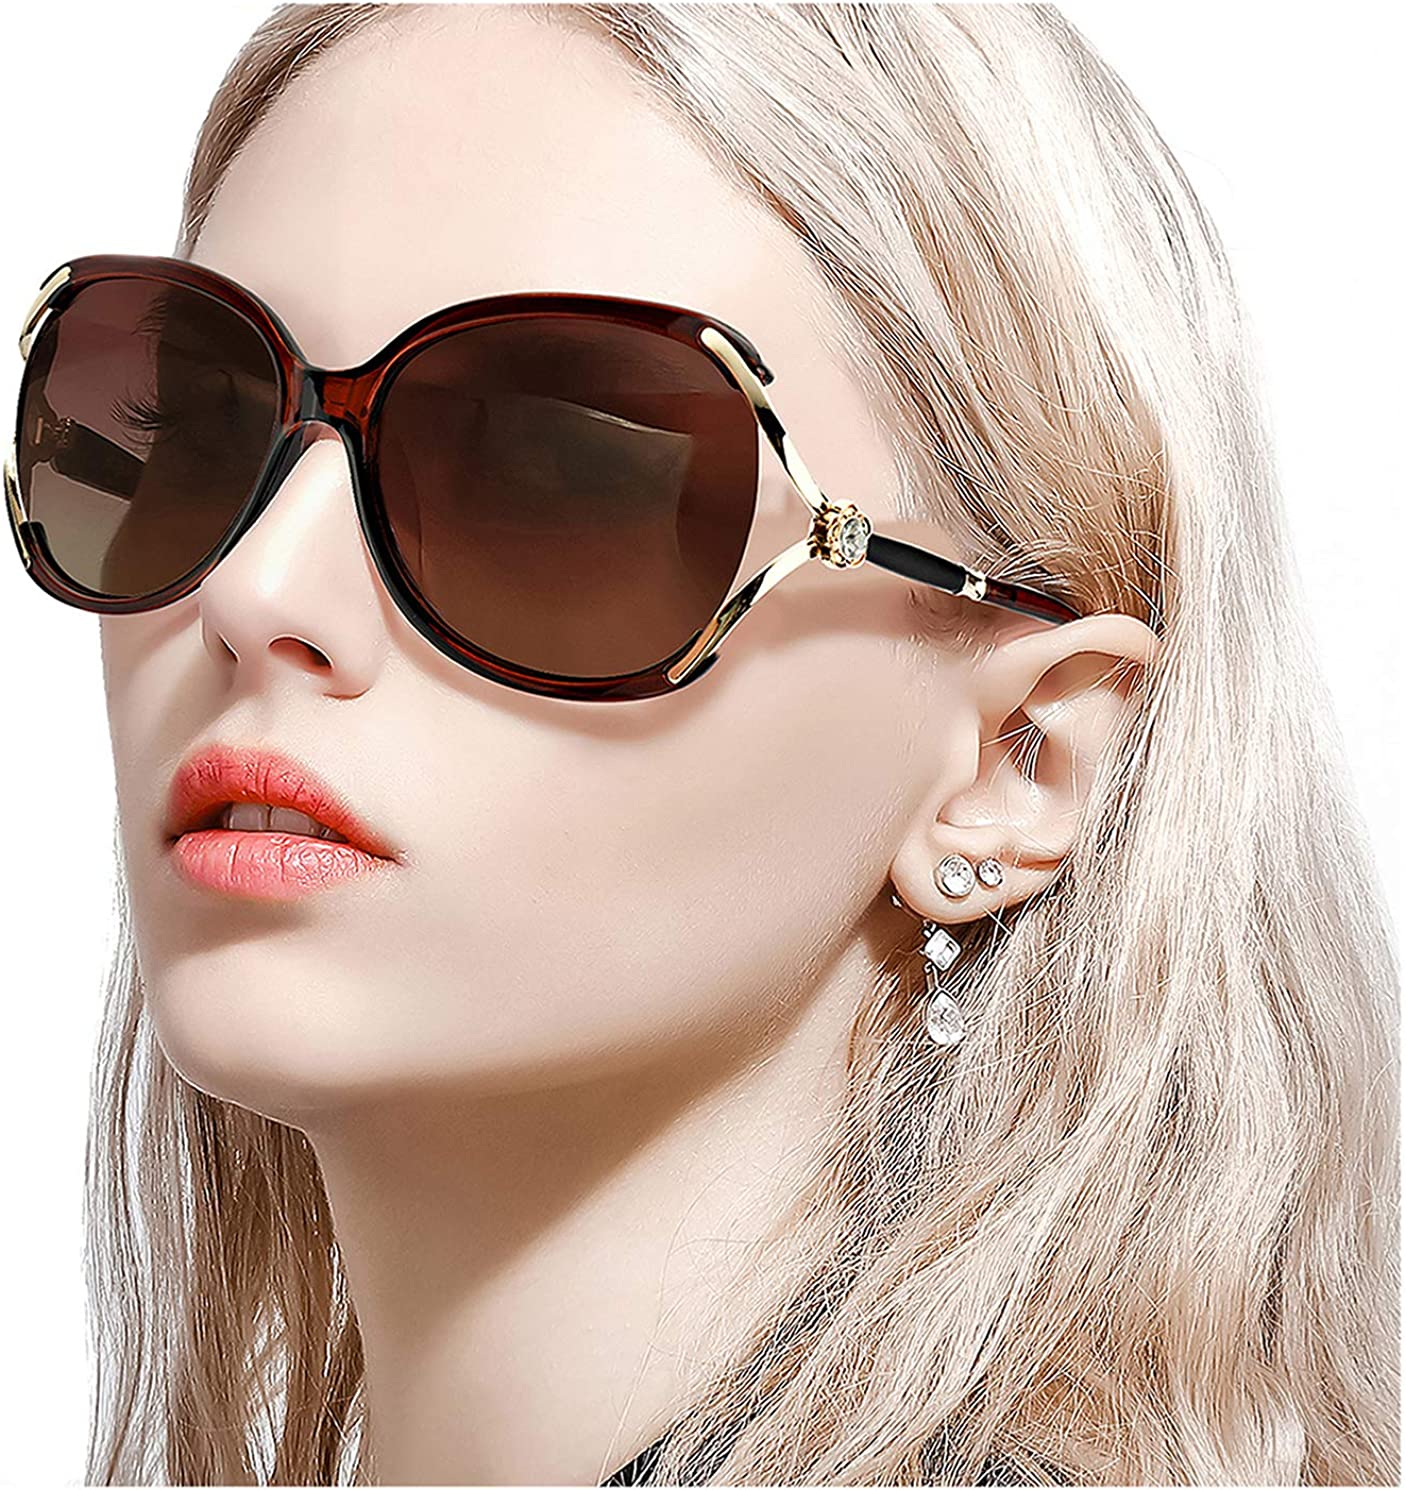 FIMILU Women's Classic Oversized Polarized Sunglasses Elegant Fashion Rhinestone Design for Driving Shopping Travelling